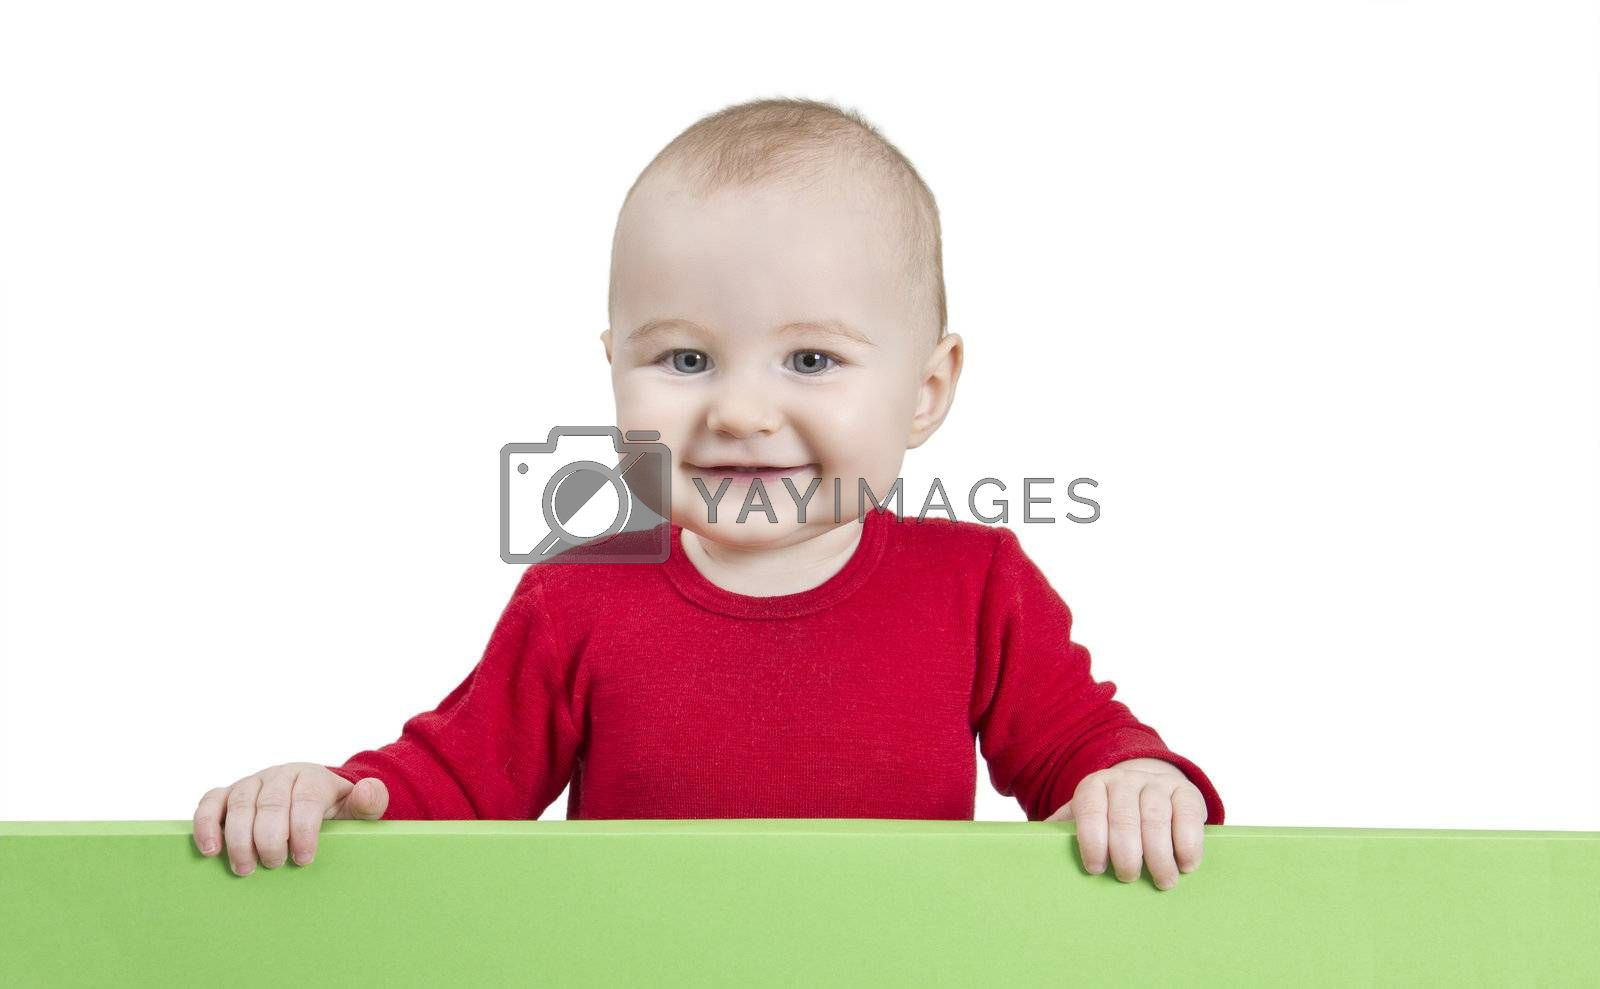 young child holding green shield. isolate on white background